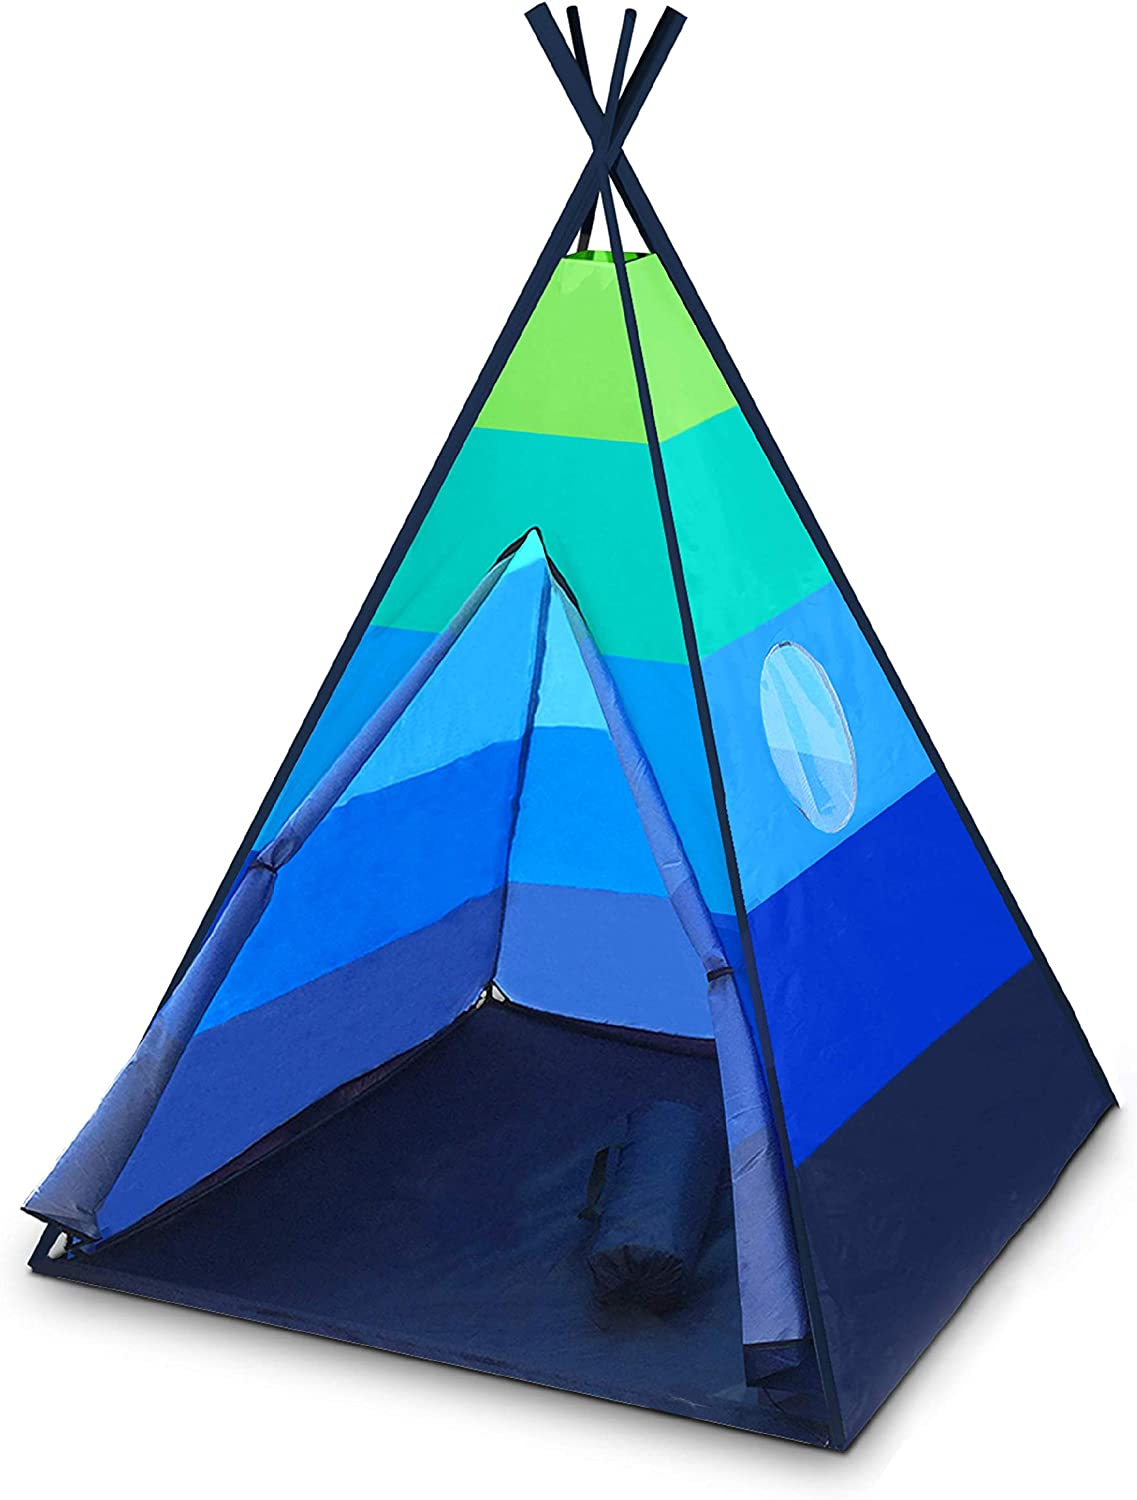 USA Toyz Happy Hut Teepee Tent for Up K 100% quality warranty! Pop Kids Max 44% OFF Indoor -